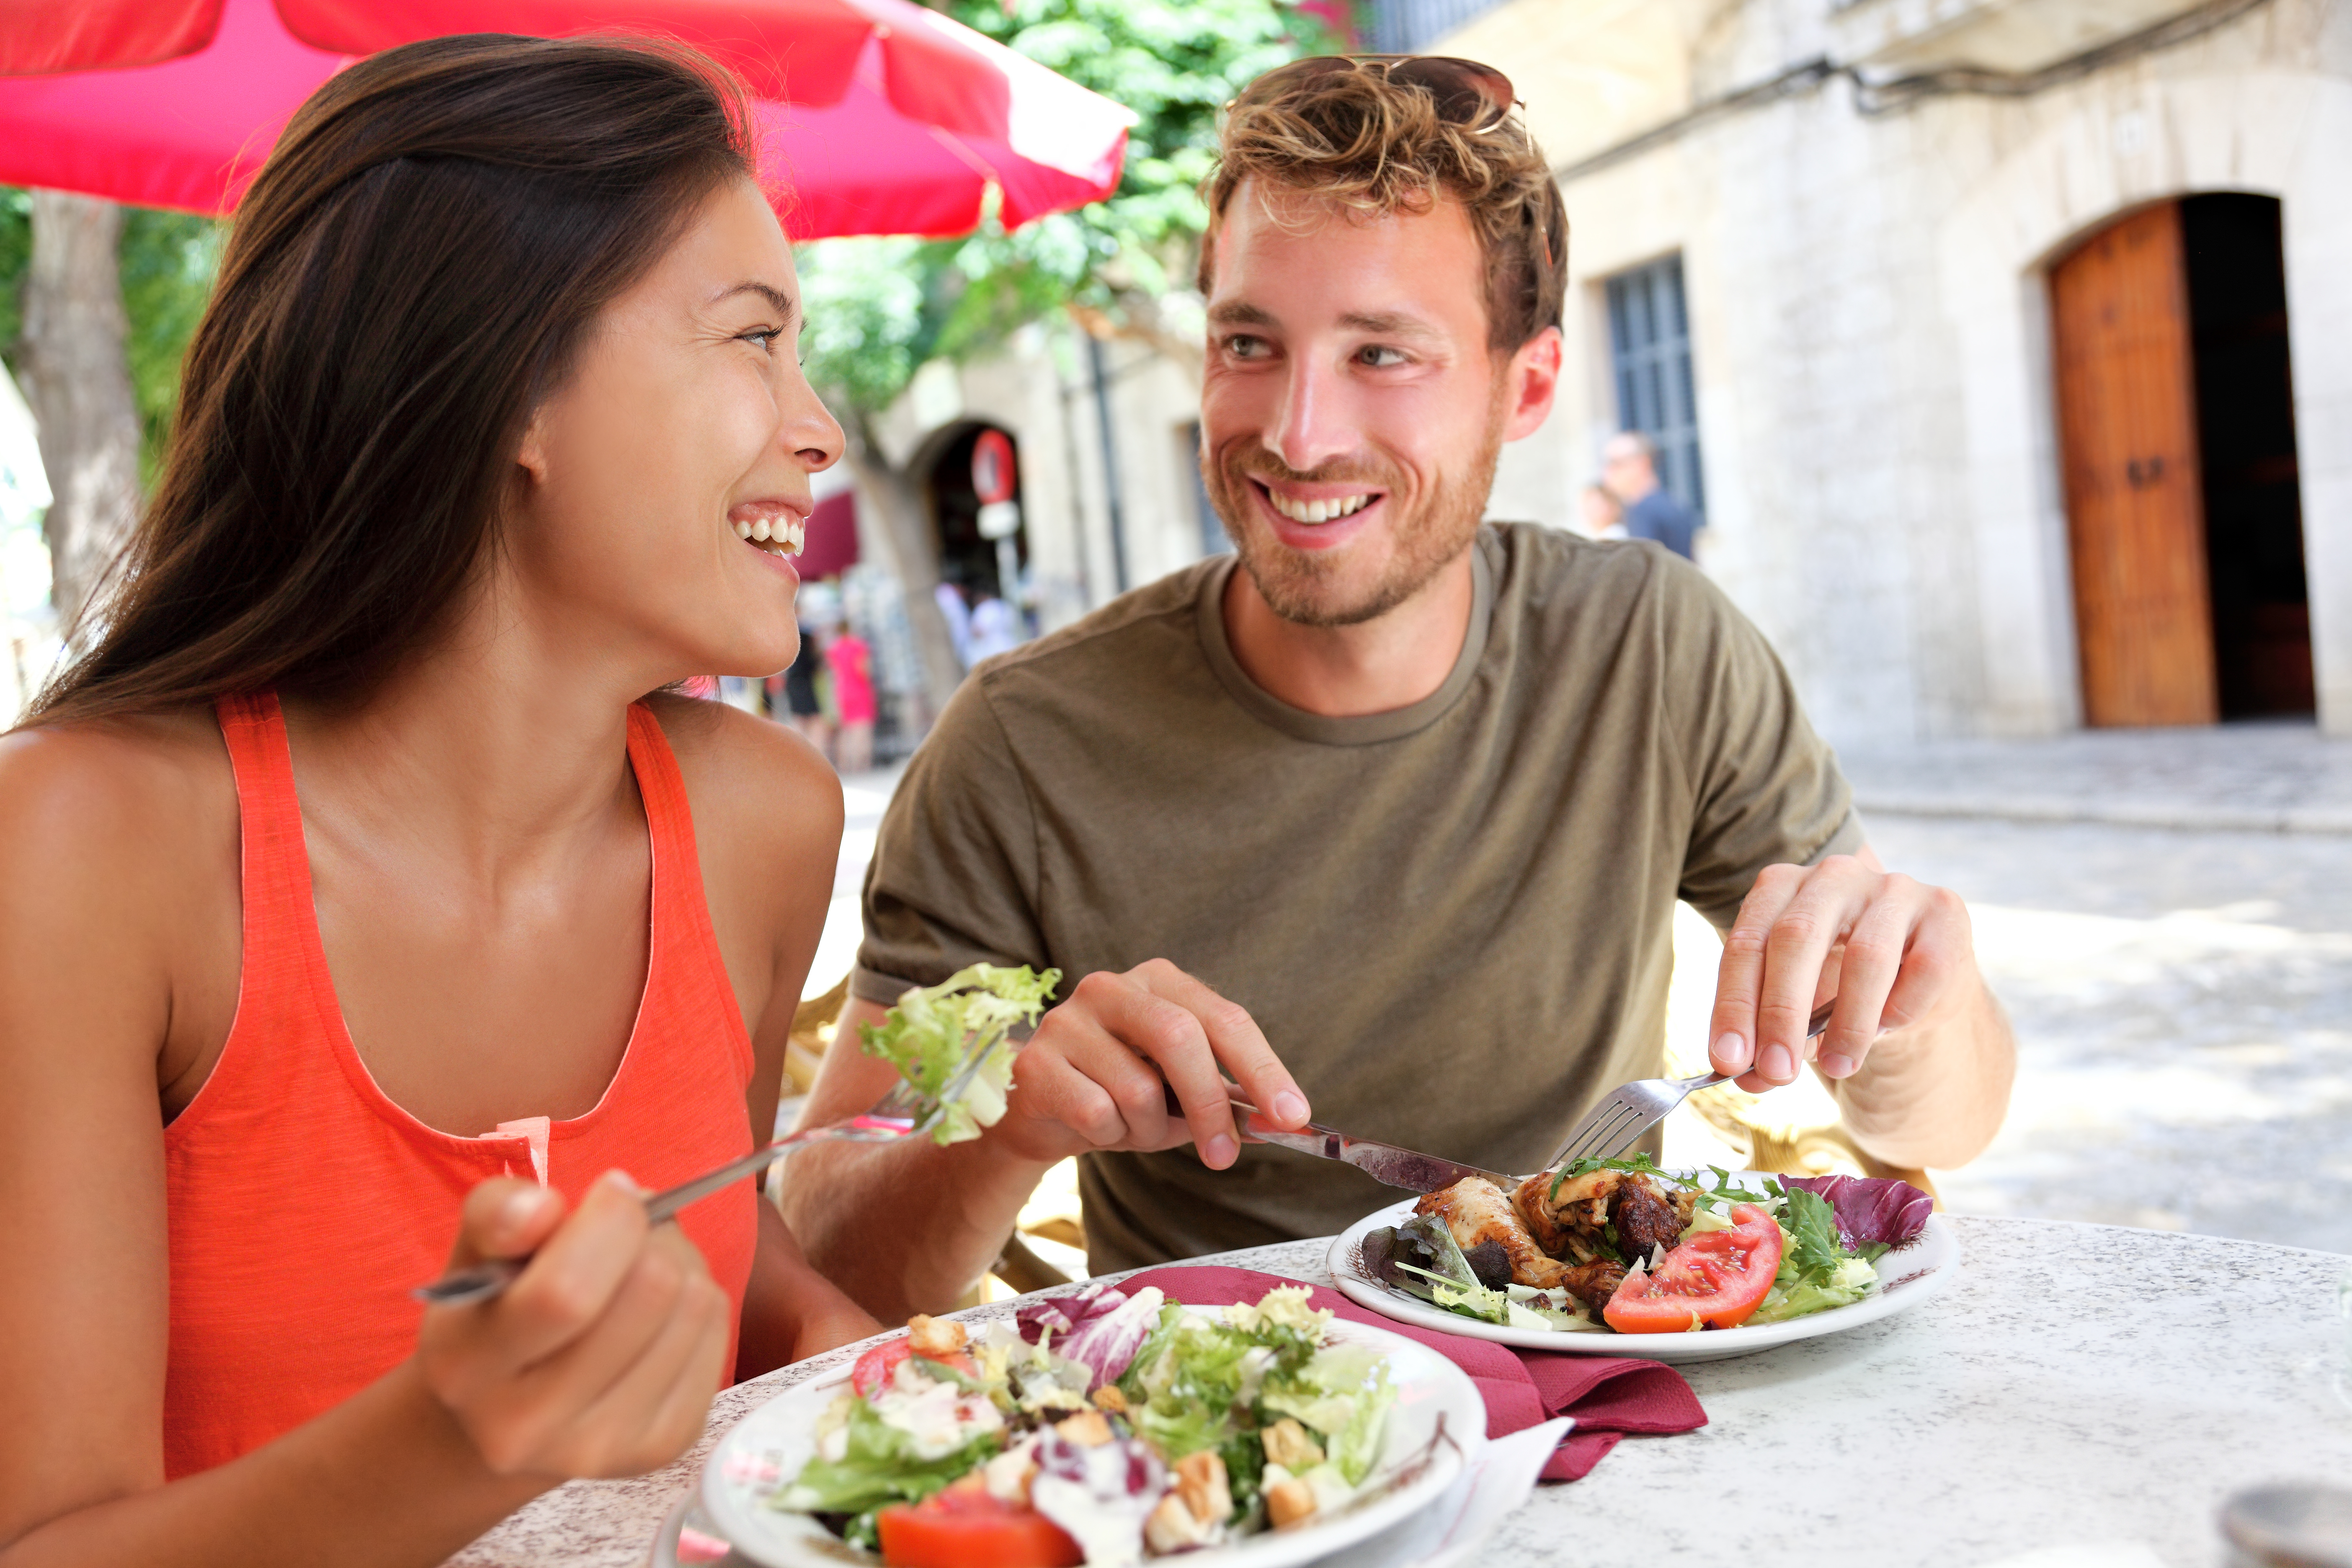 Foodies take eating behaviours with them on trips